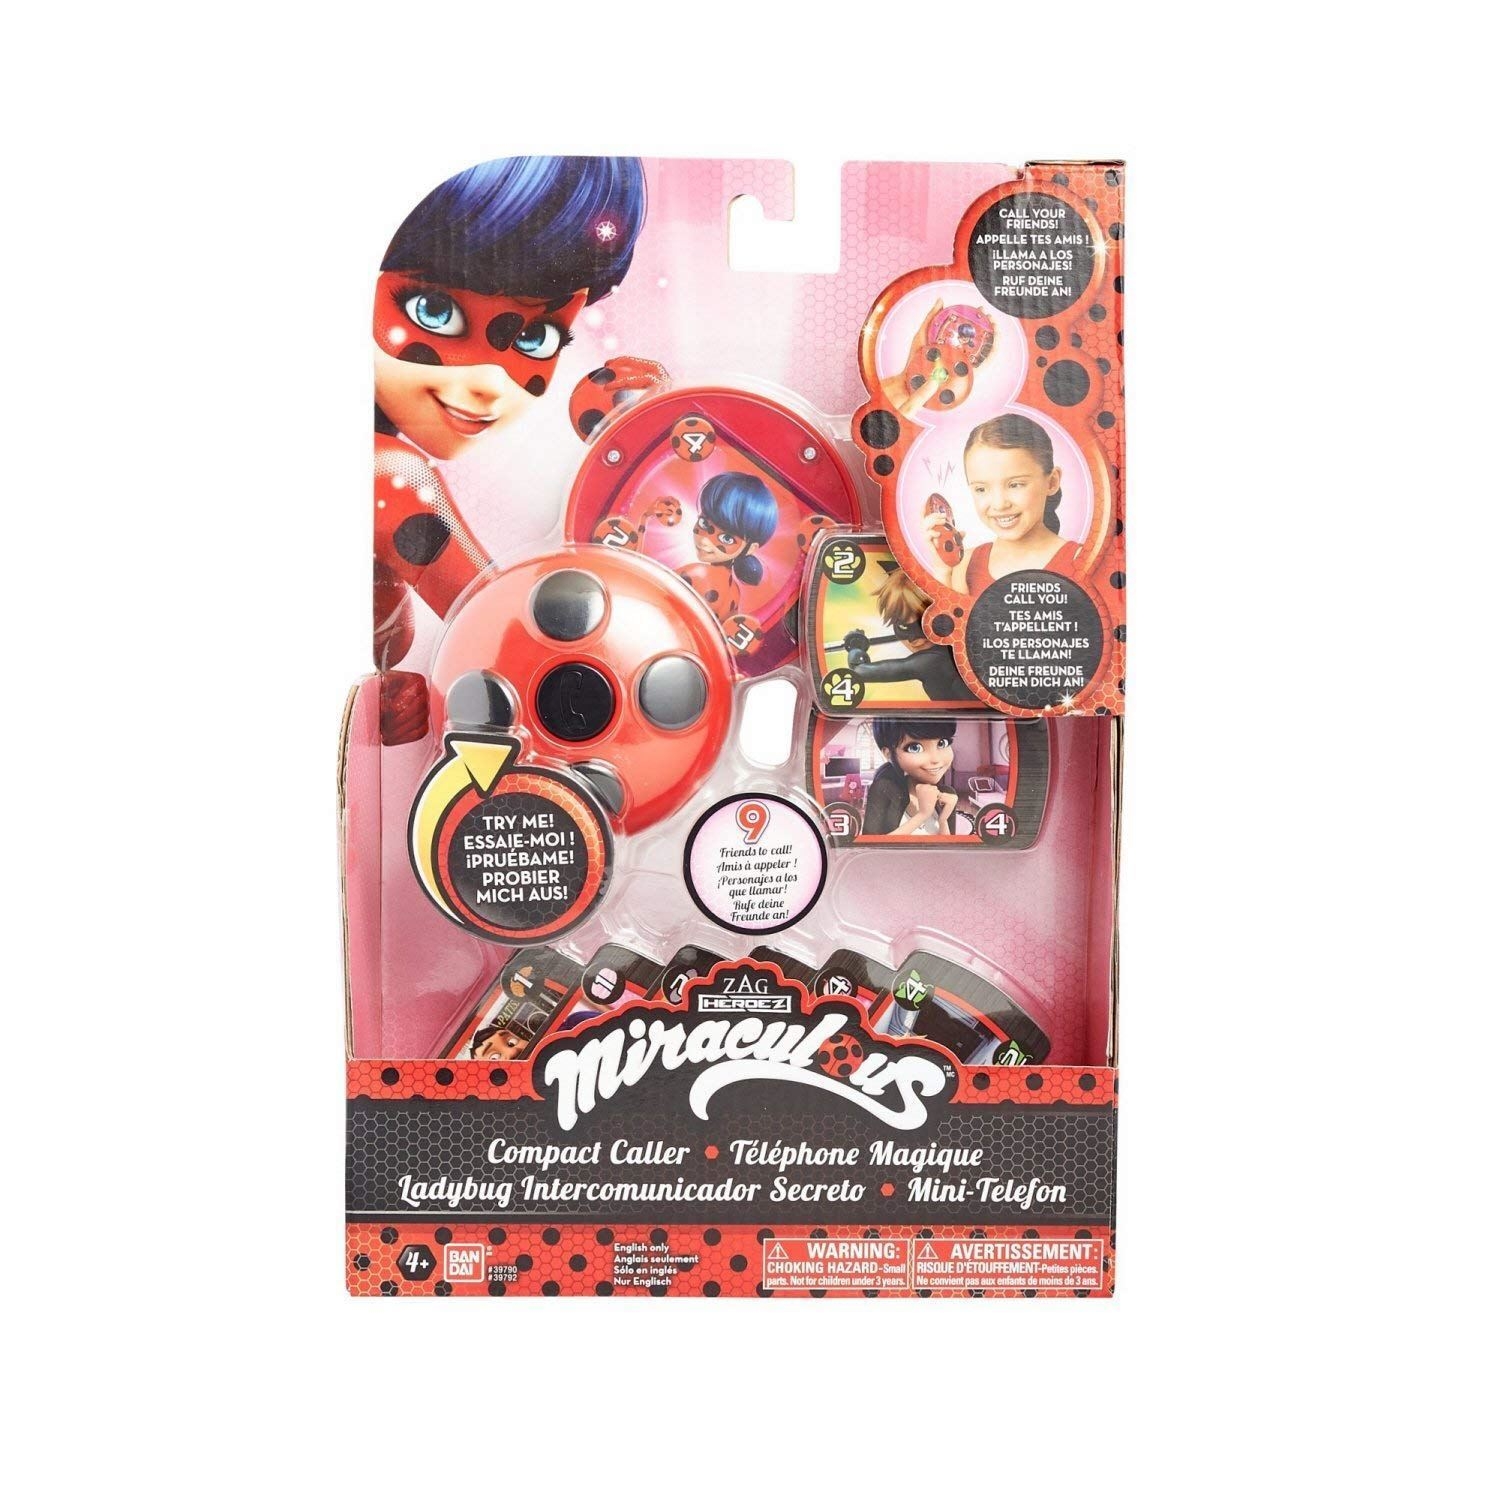 Miraculous Compact Caller by Miraculous